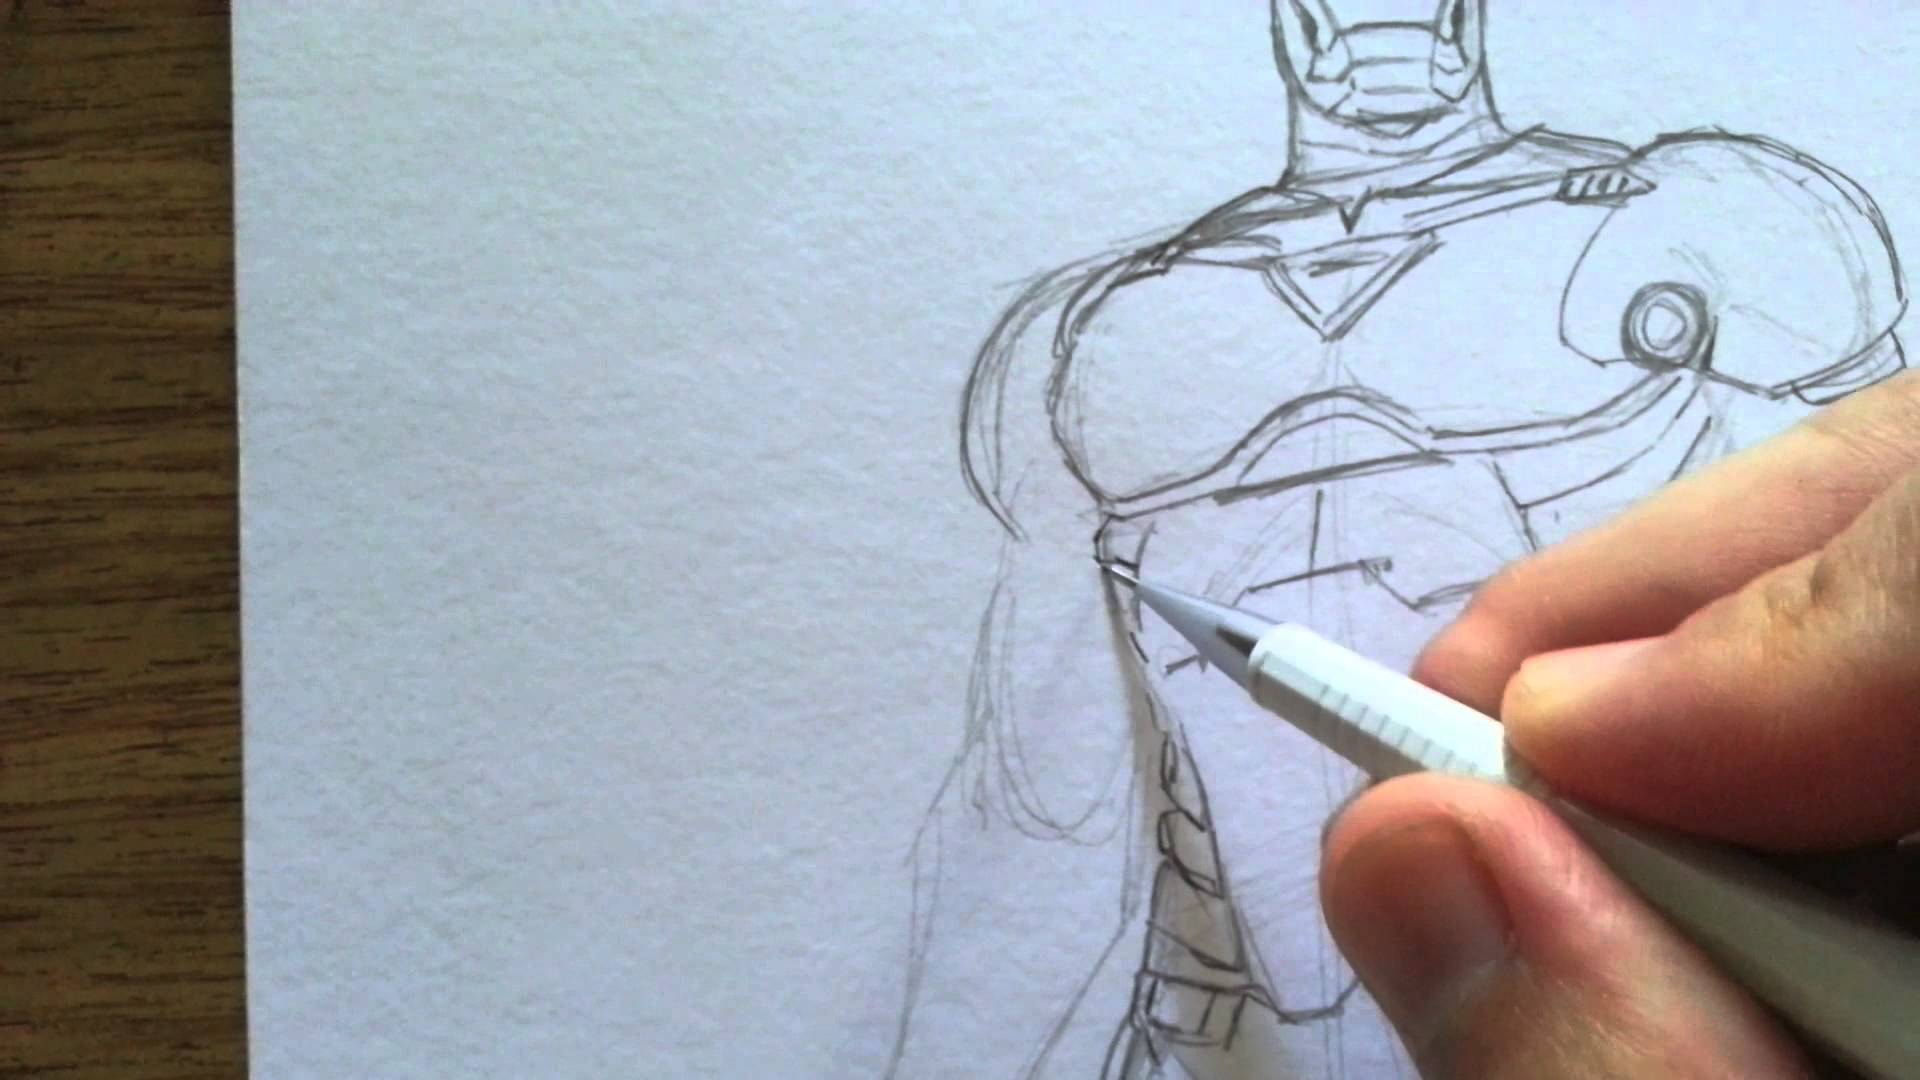 iron man drawing easy at getdrawings | free for personal use